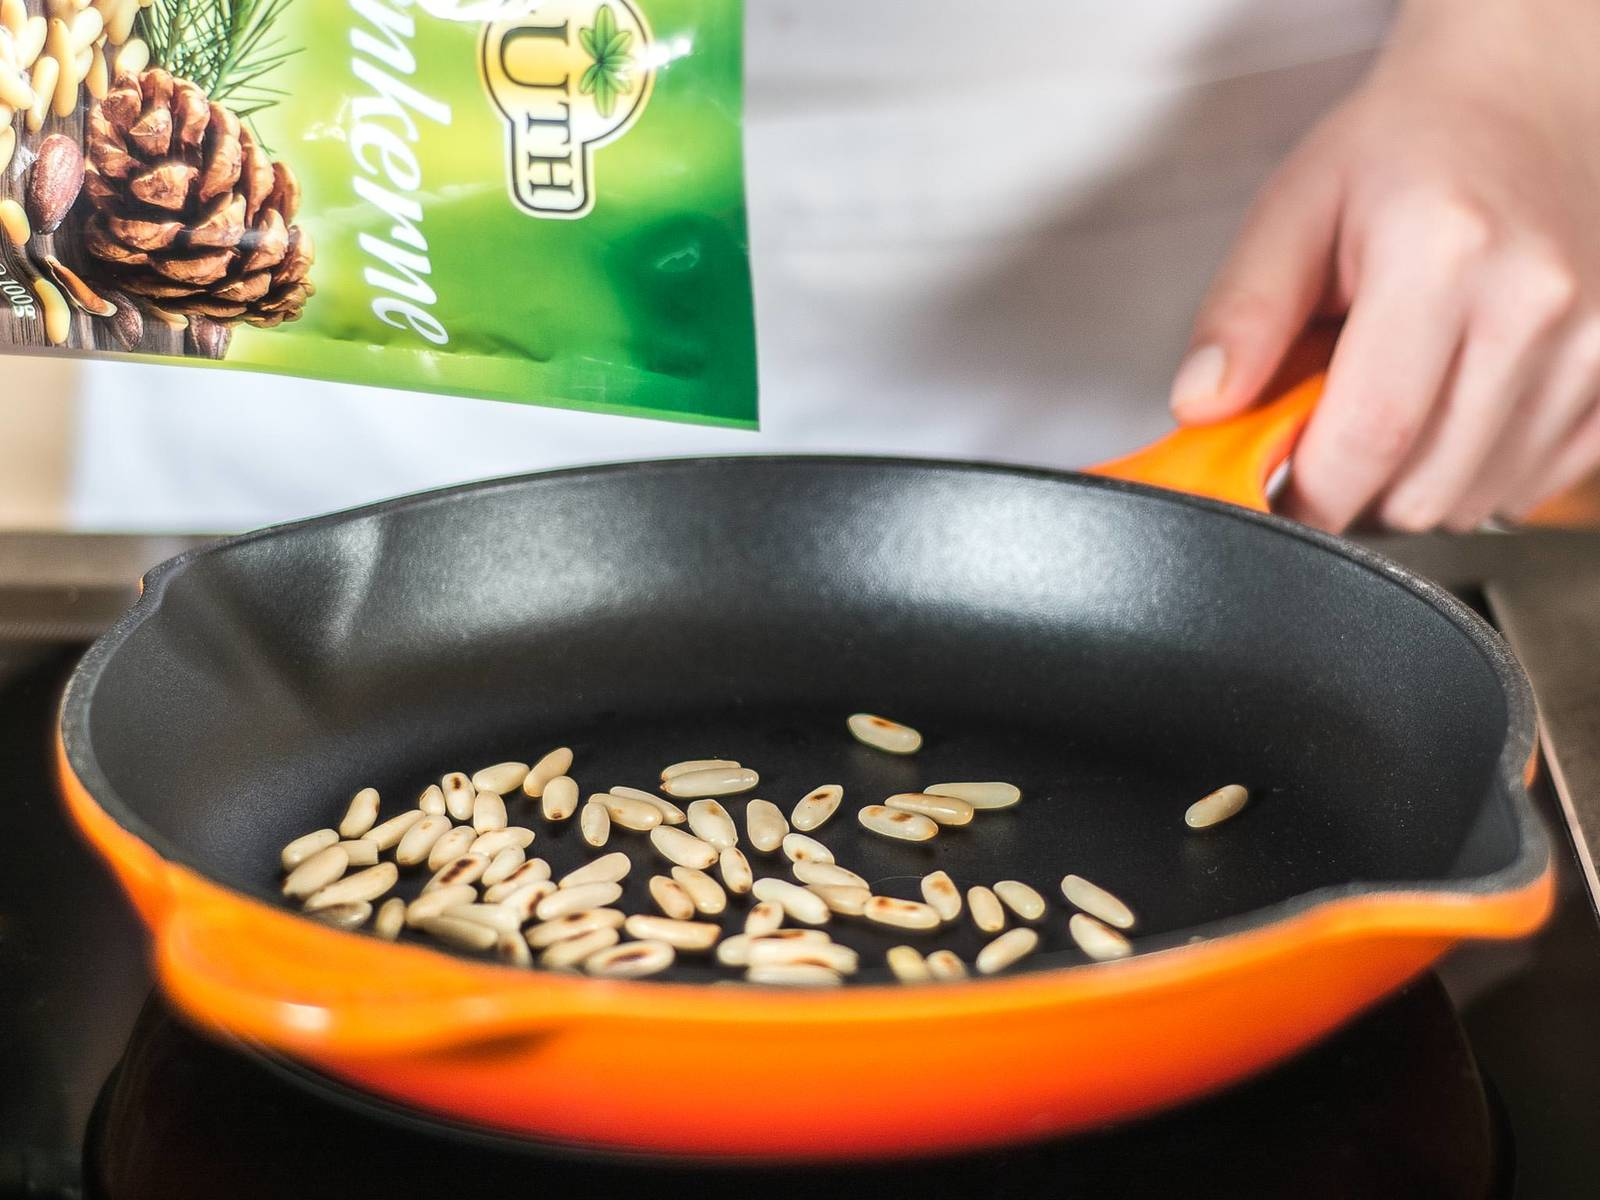 In a grease-free frying pan, roast the pine nuts over medium heat, stirring often, for approx. 2 – 3 min. until golden brown and fragrant.